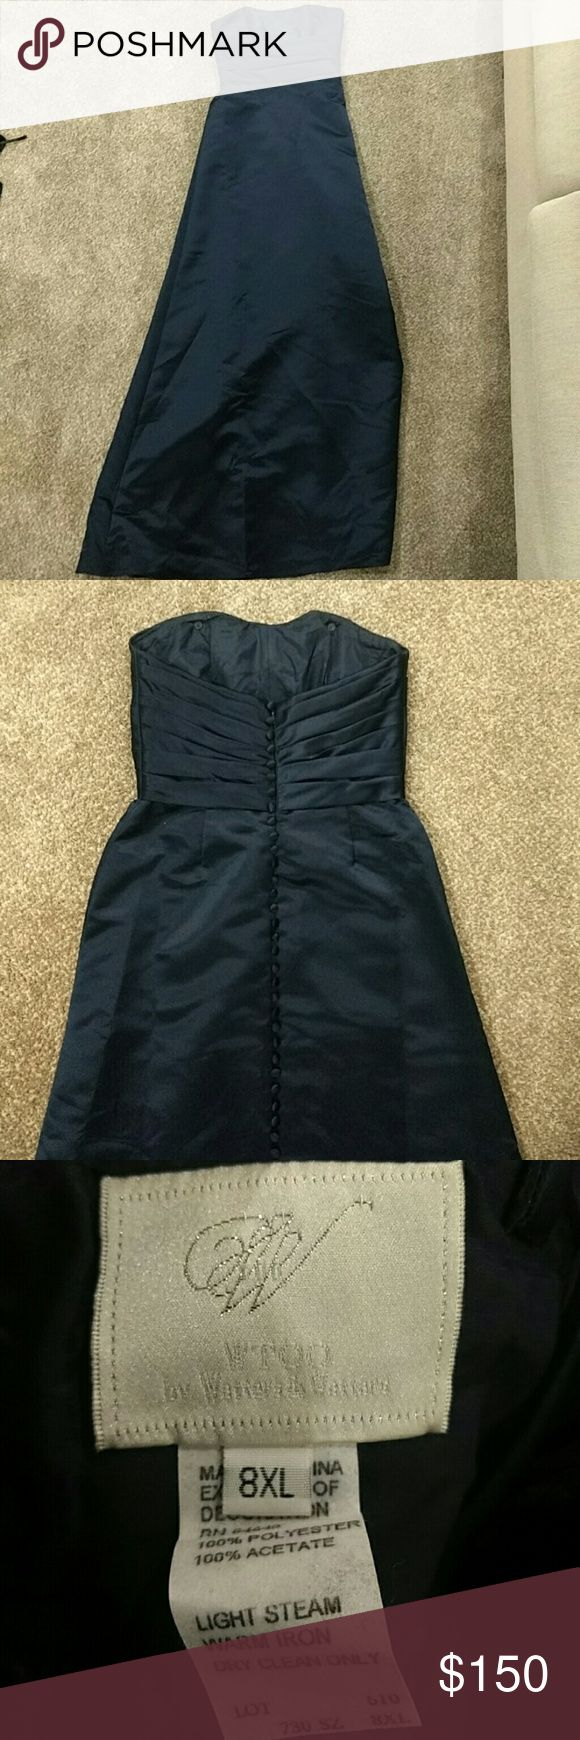 Classic Navy blue bridesmaid dress Bought this for my brother's wedding, wore it once! If you're tall, it'd be perfect for bridesmaid dress or even a more formal event or wedding. Size 8 extra long. David's Bridal Dresses Wedding